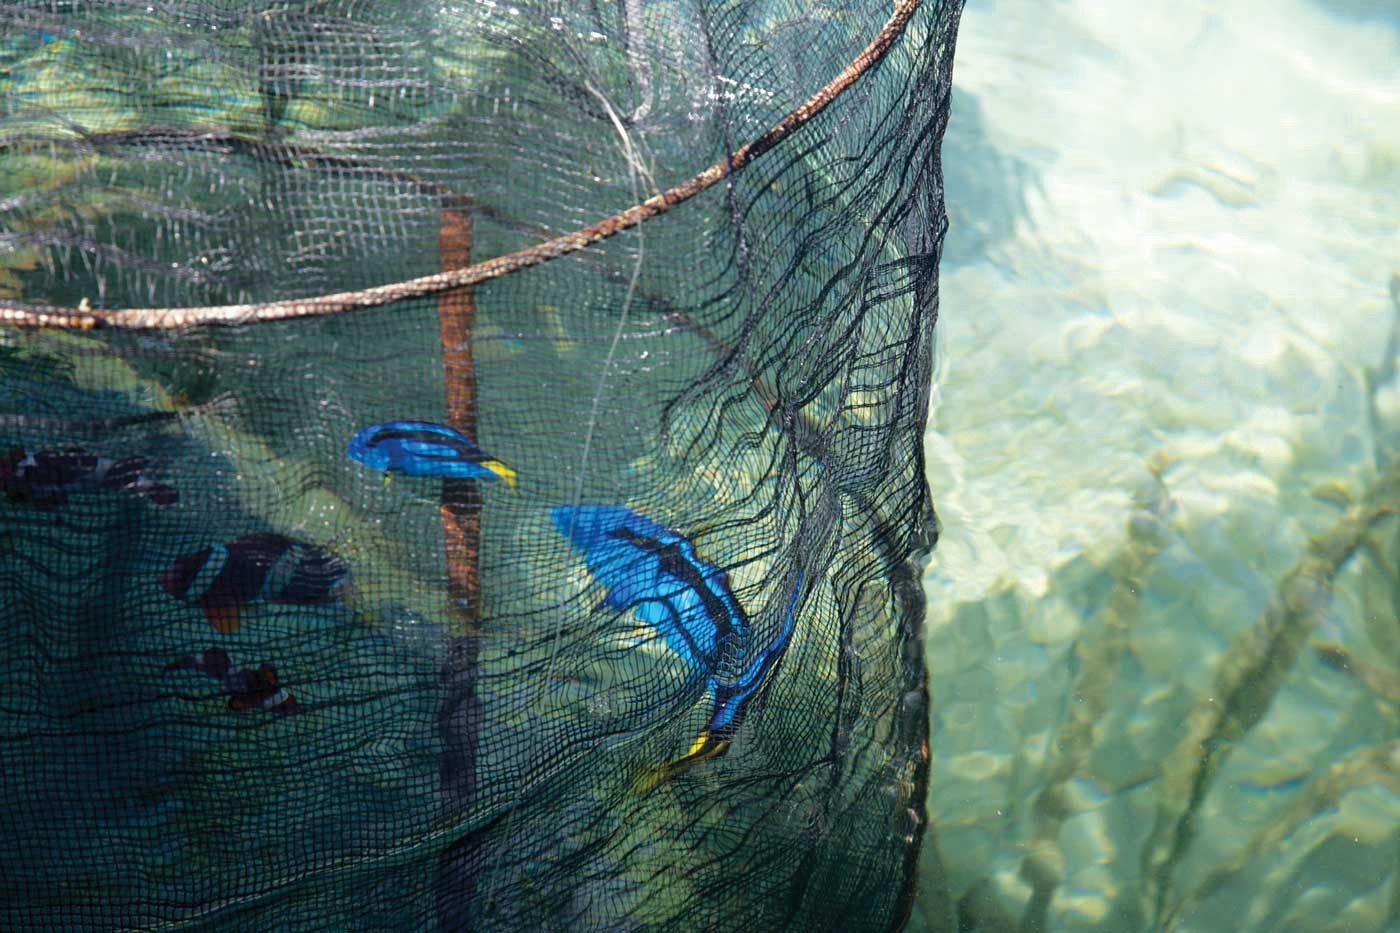 Two blue tang swim around inside a net. To their left are three clown fish.